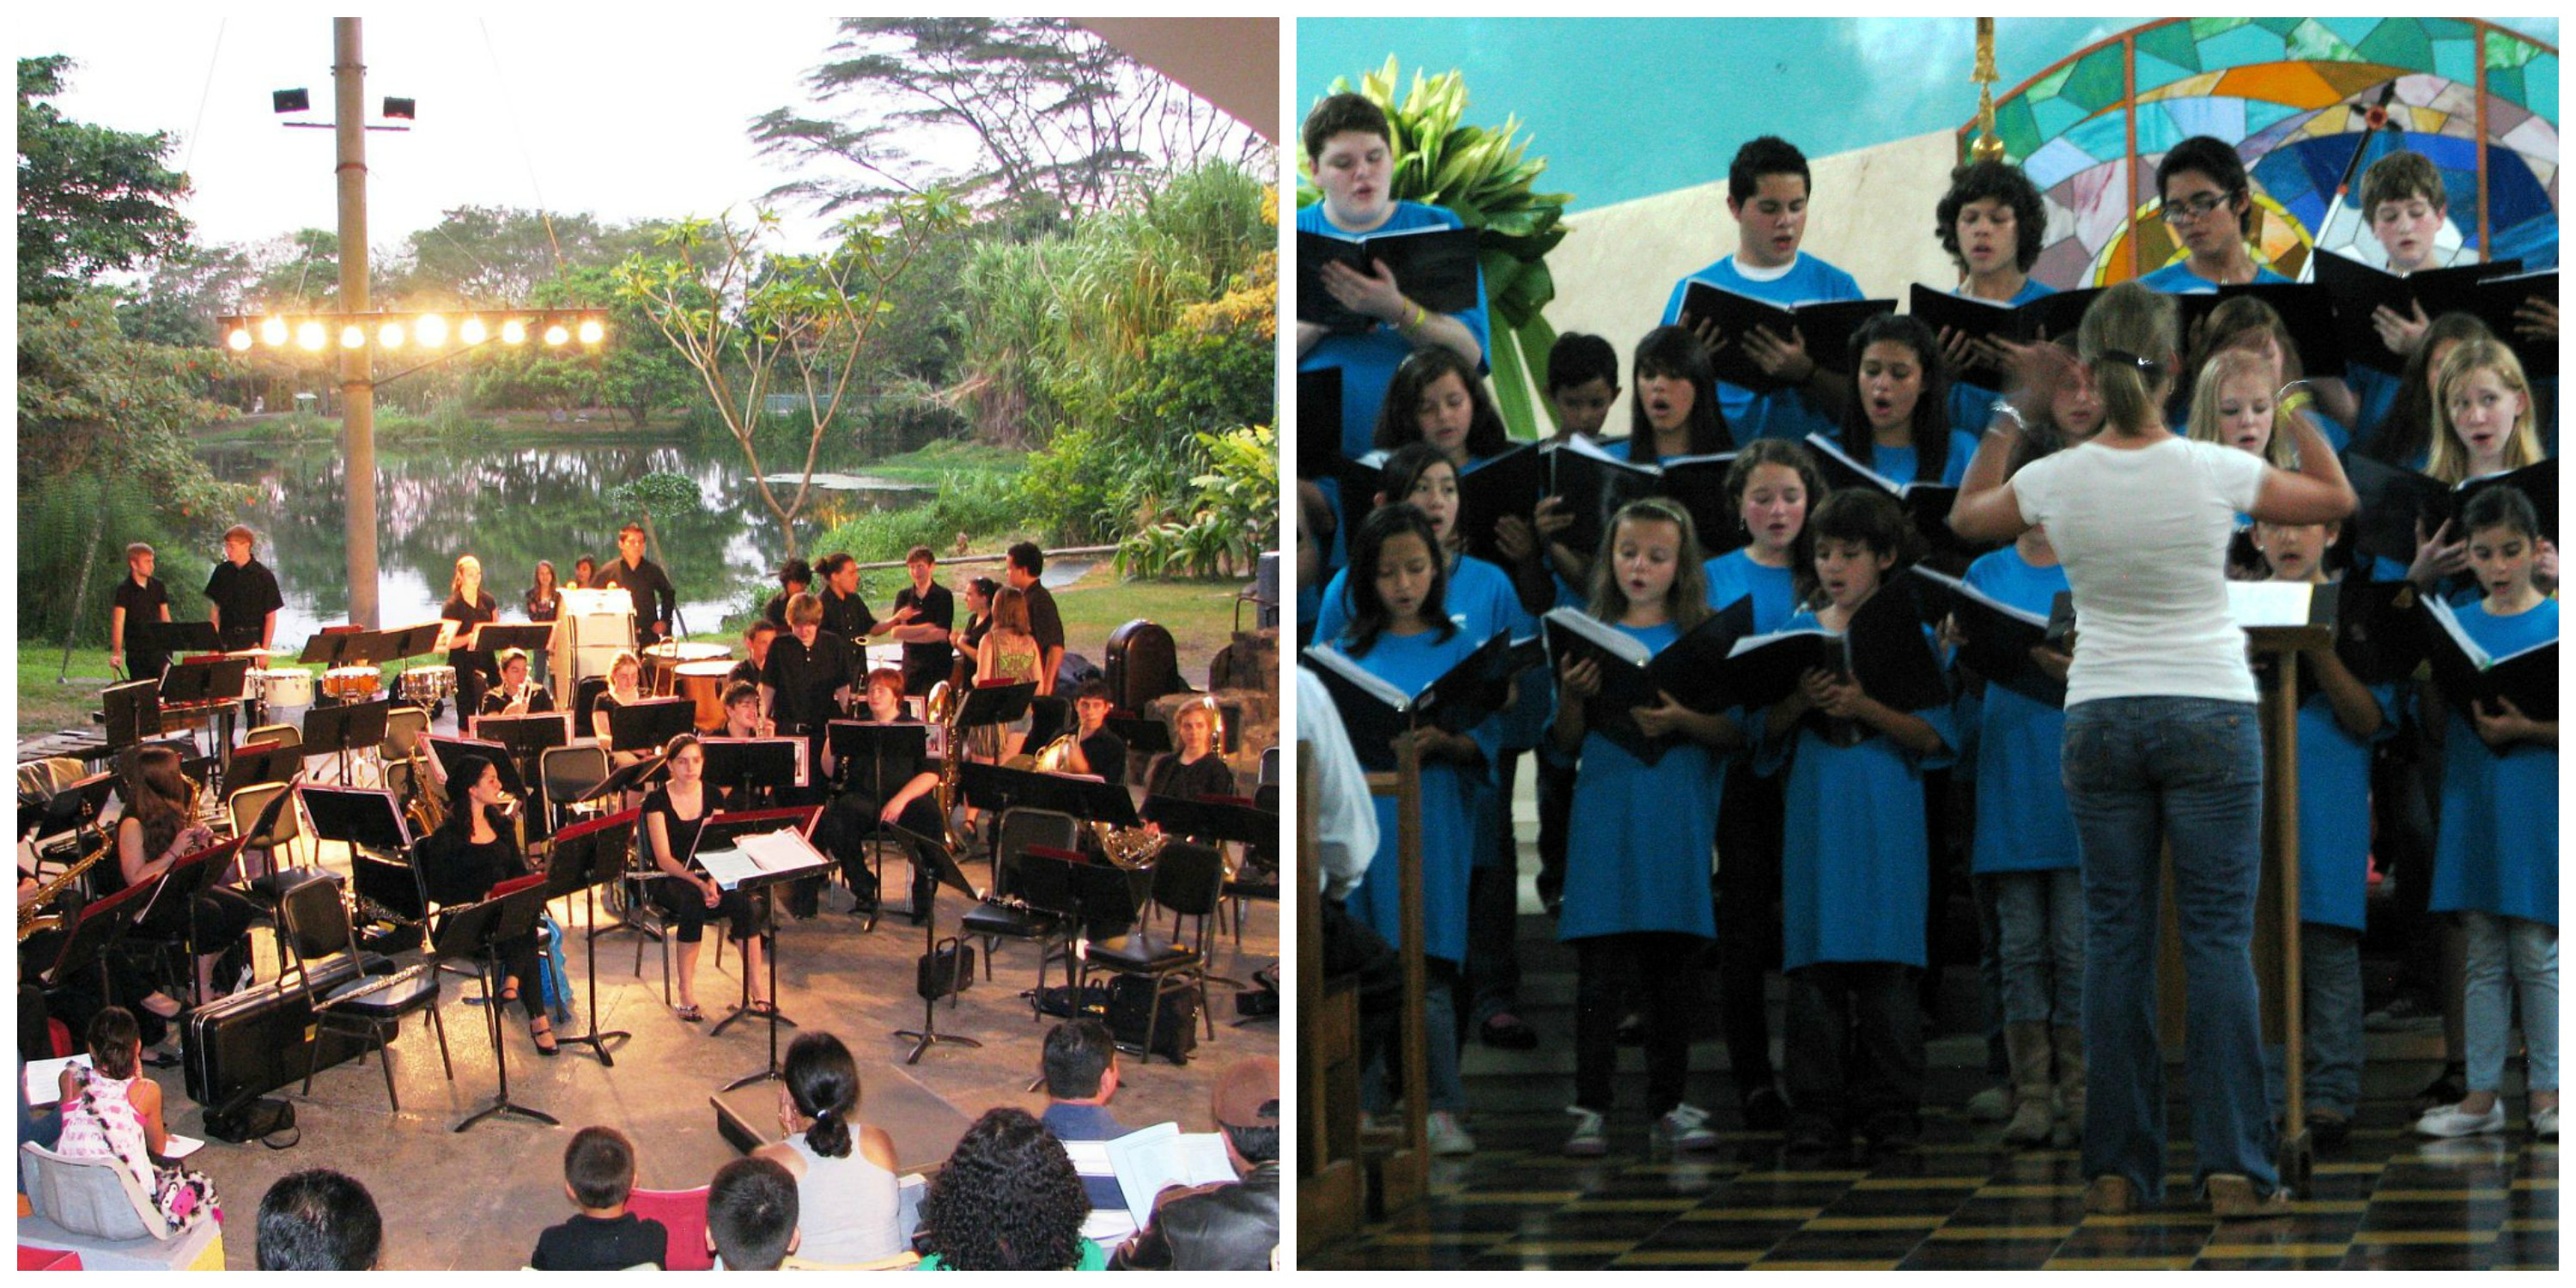 Left: Band performing in an amphitheatre with spotlights shining on them; lush Costa Rican flora and a clear body of water in the background | Right: Choir director conducting a yoth choir wearing blue T-shirts in an outdoor amphitheatre with colorful backdrop behind them